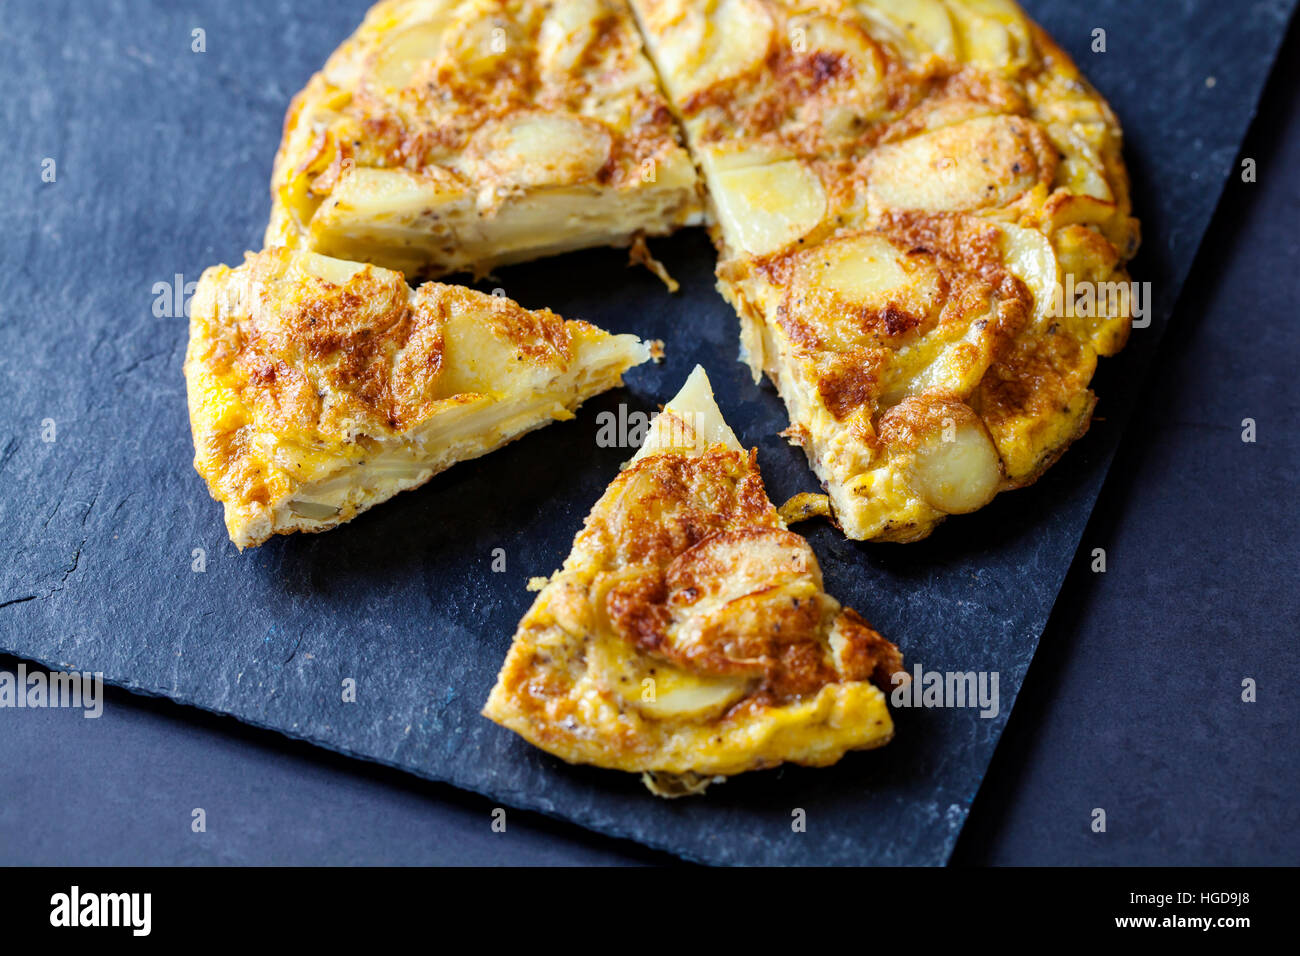 Authentische spanische tortilla Stockbild